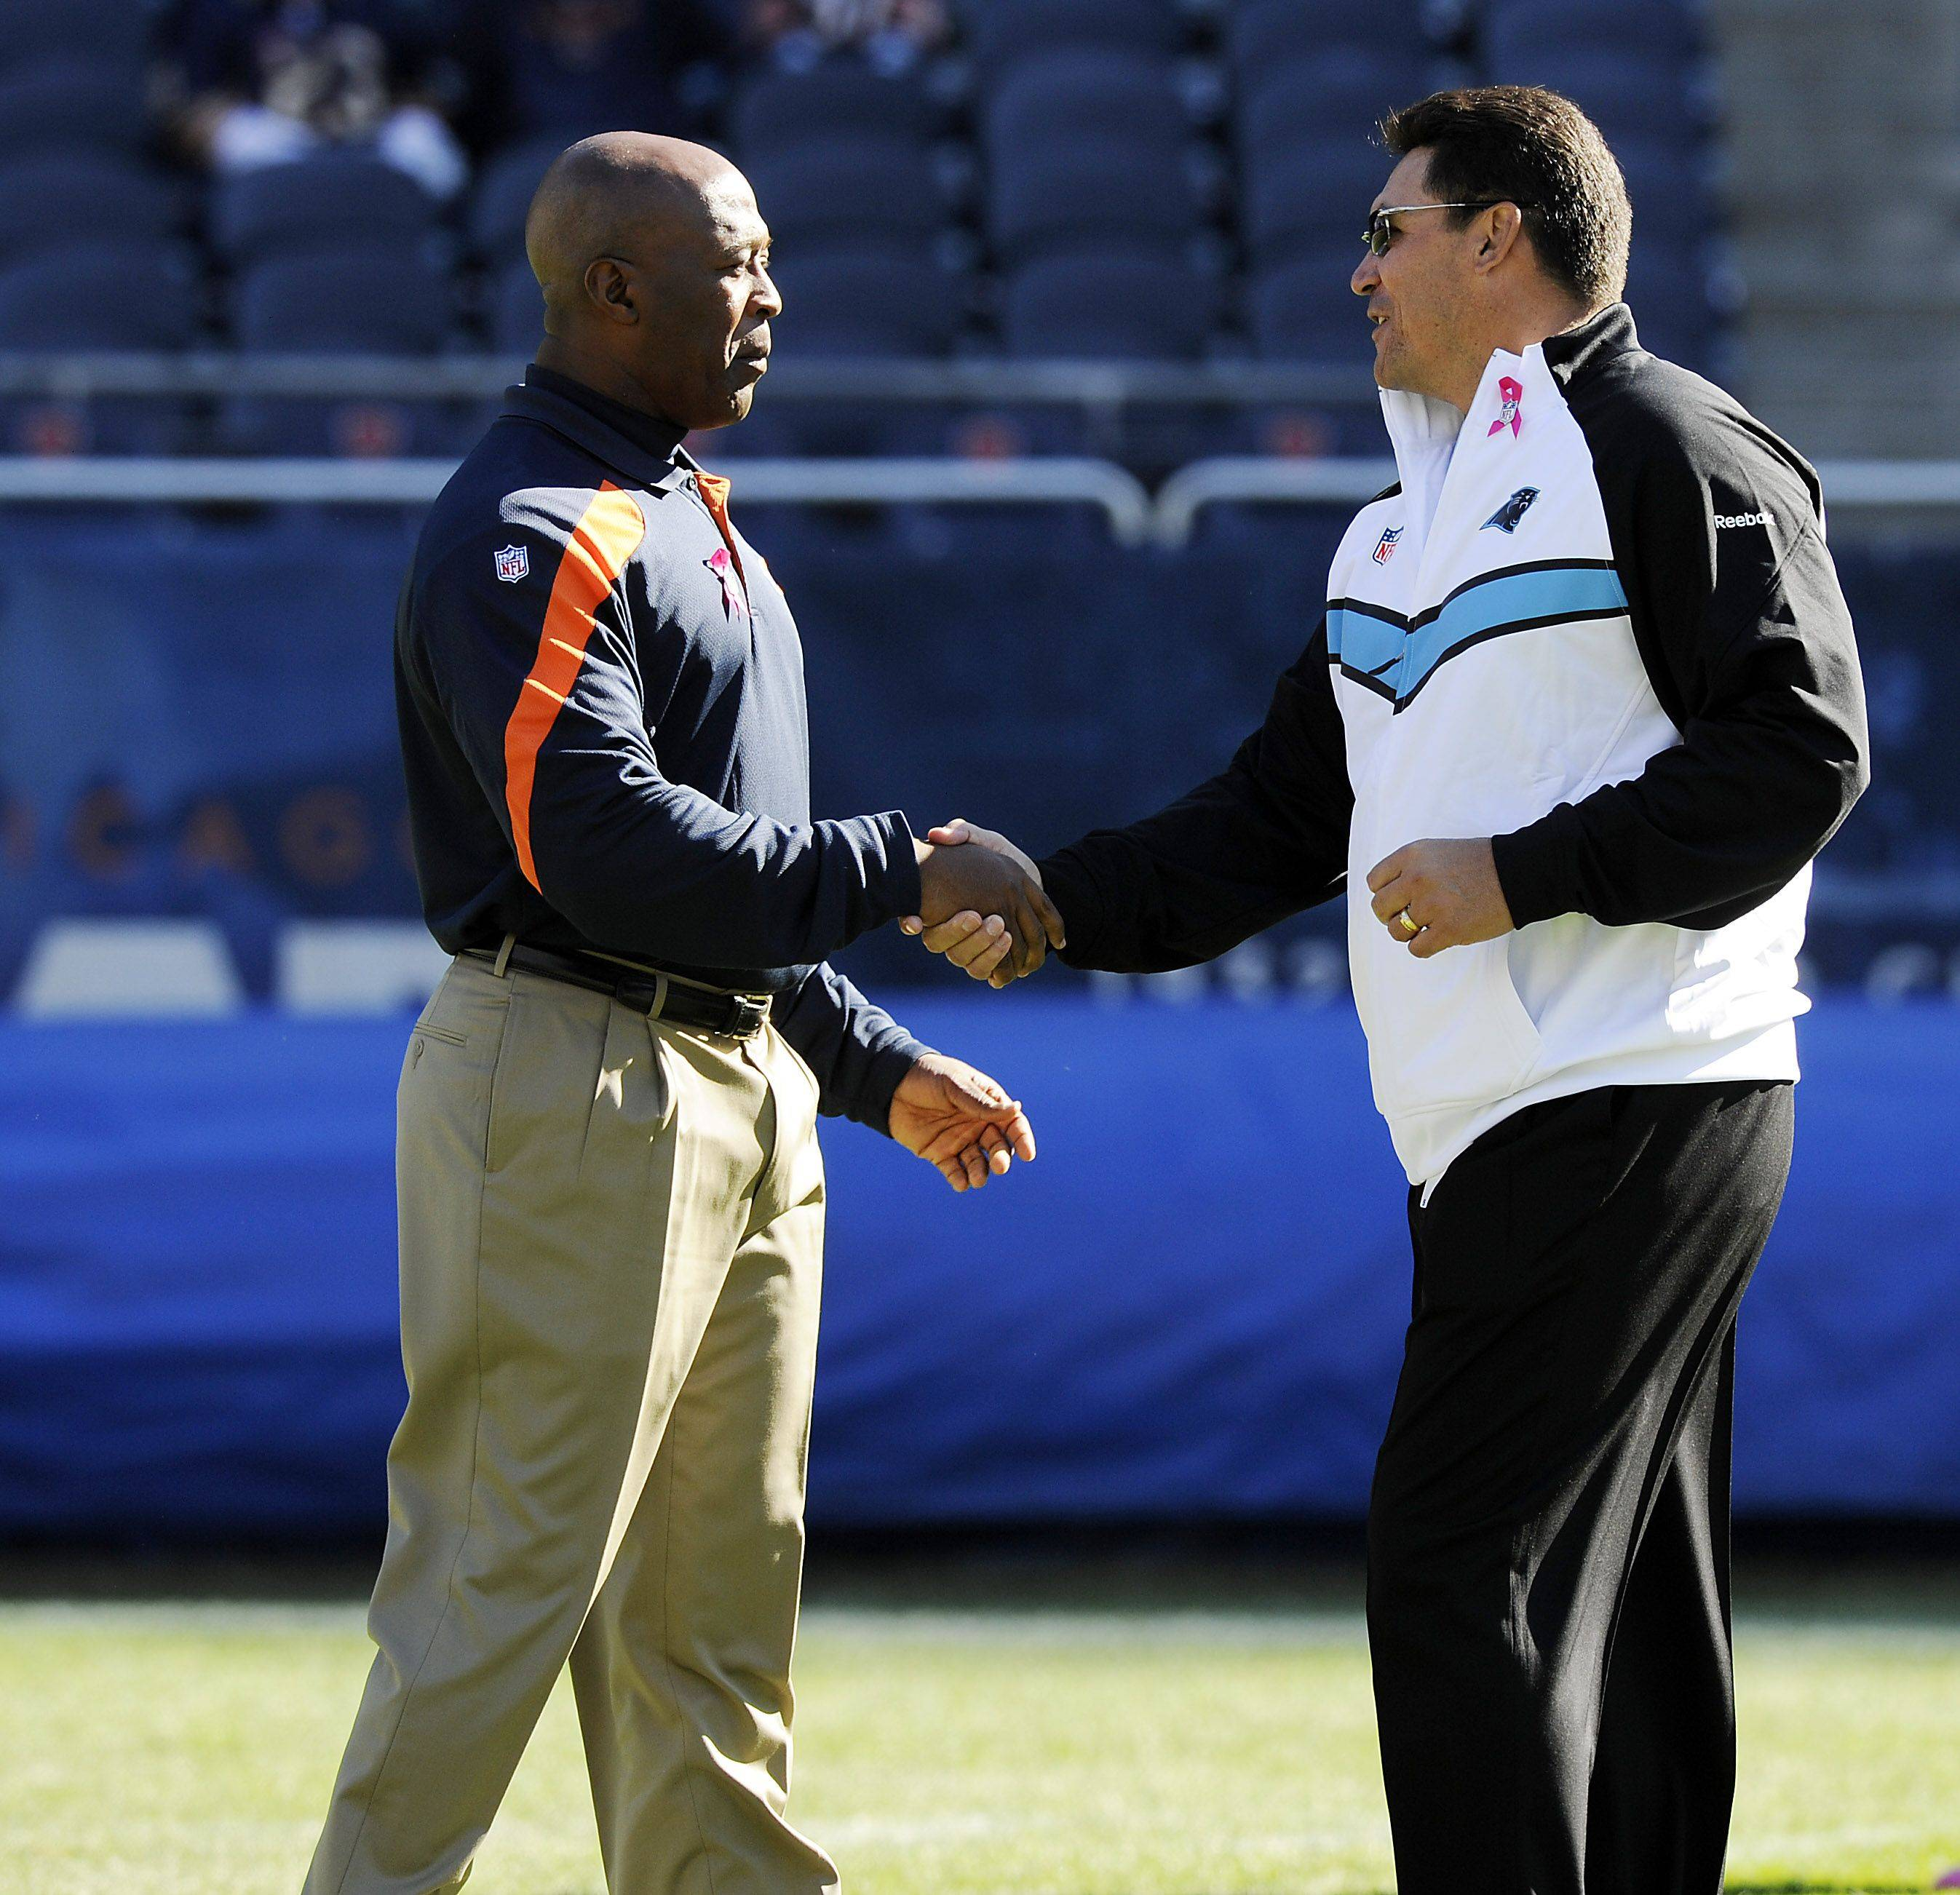 Chicago Bears coach Lovie Smith greets Panthers head coach Ron Rivera before the game as they get ready to play.